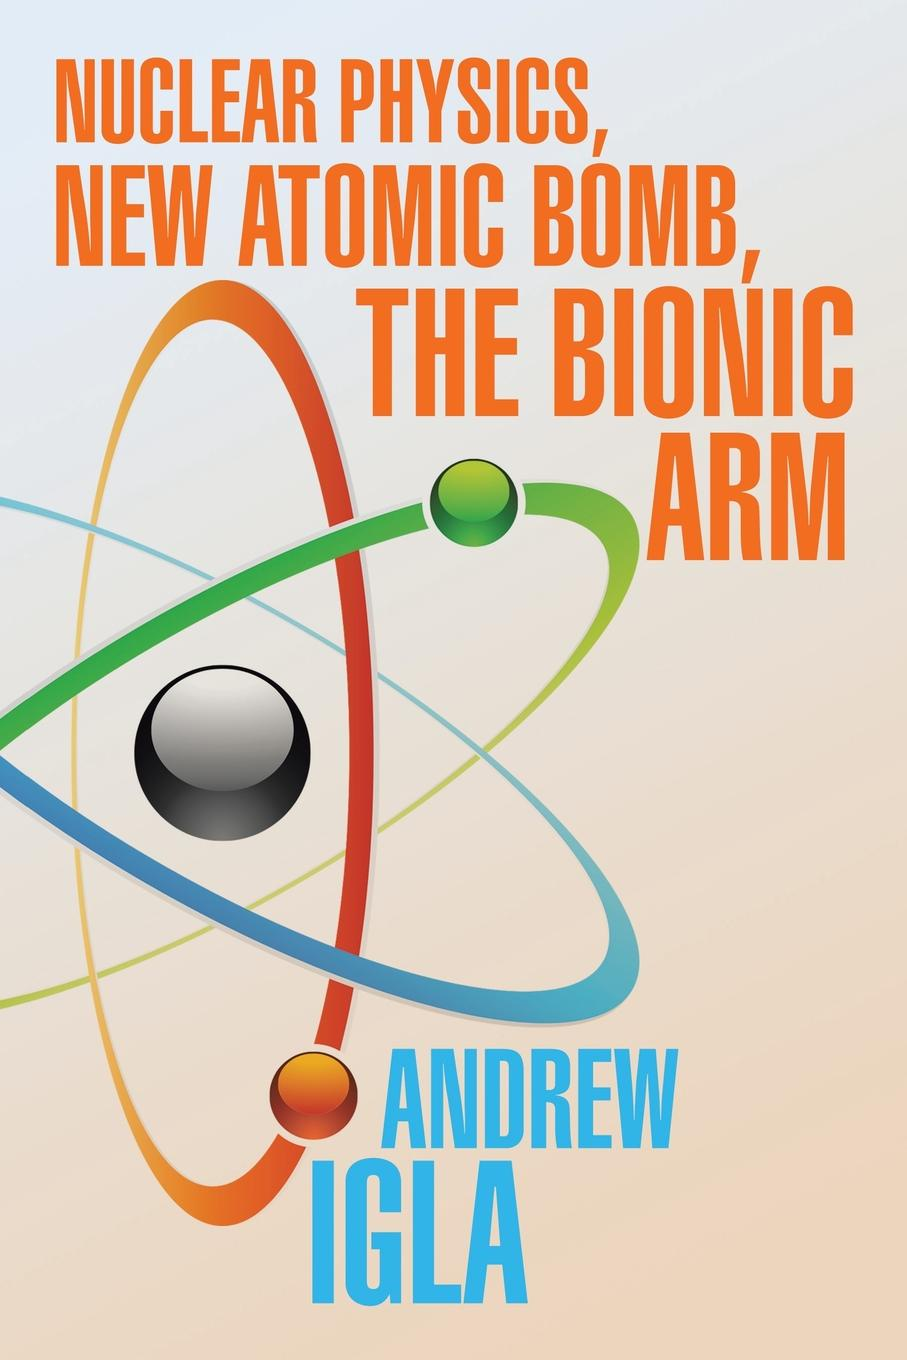 Andrew Igla Nuclear Physics, New Atomic Bomb, the Bionic Arm w heisenberg nuclear physics